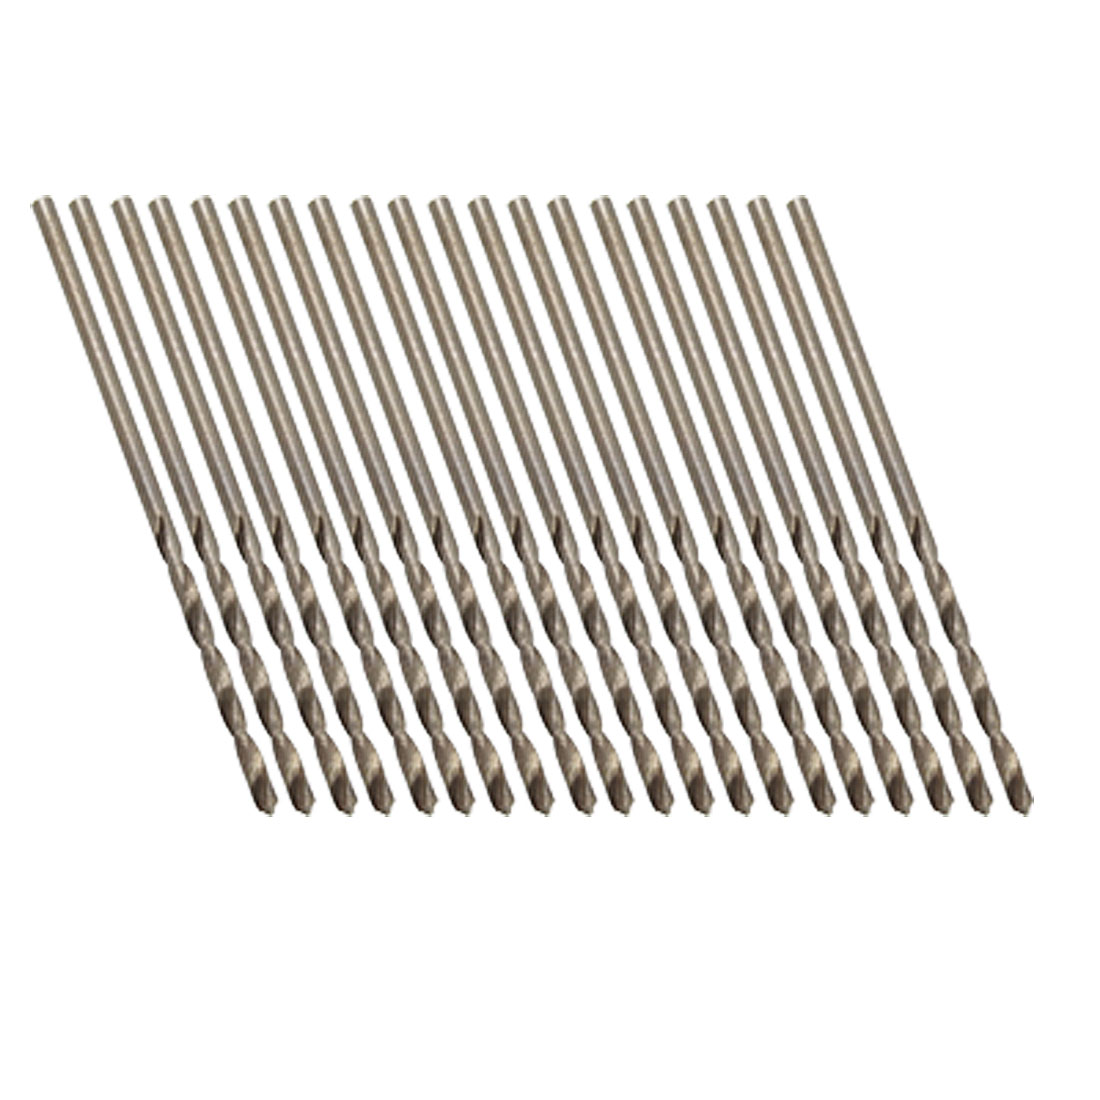 1.4mm Micro HSS Straight Shank Twist Drill Bit 20 Pcs